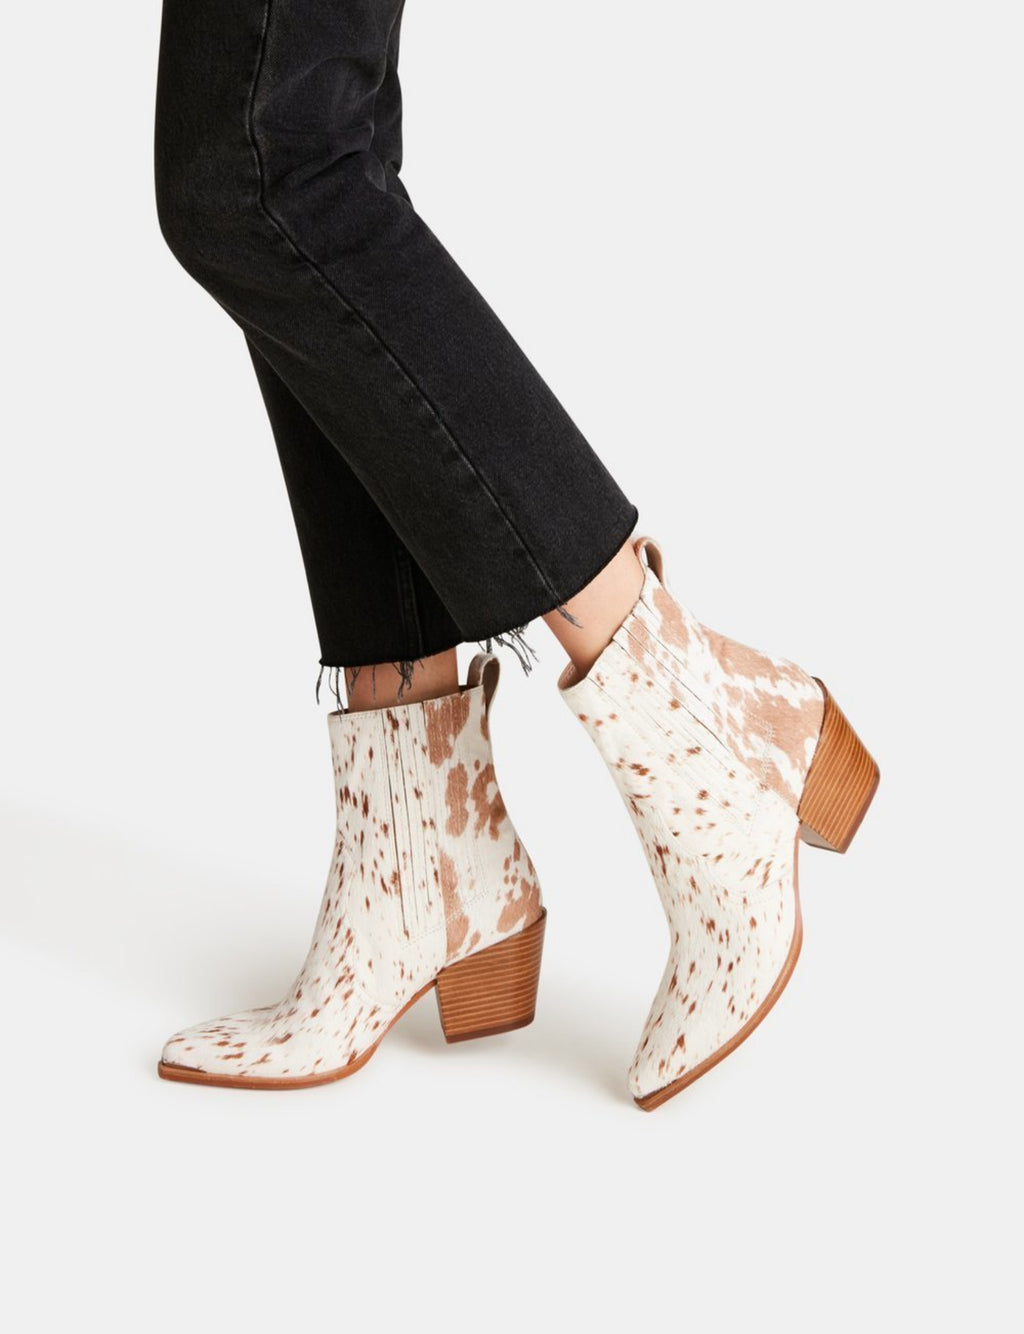 Dolce Vita Serna Bootie in Fawn